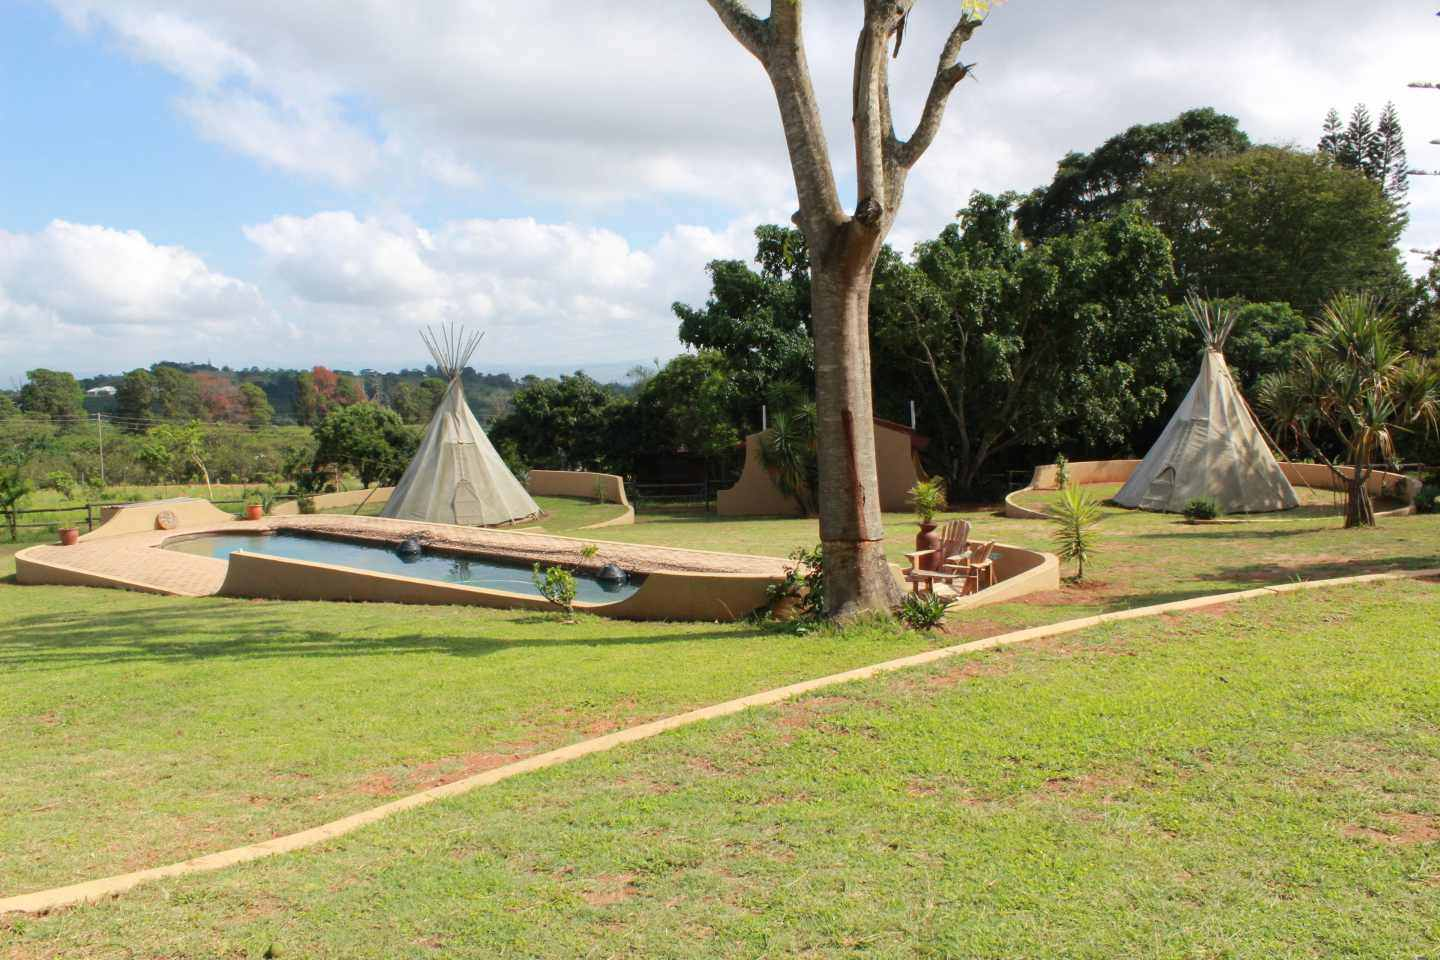 Camping Beds For Tents >> Amazing Glamping and Camping Spots Near Joburg